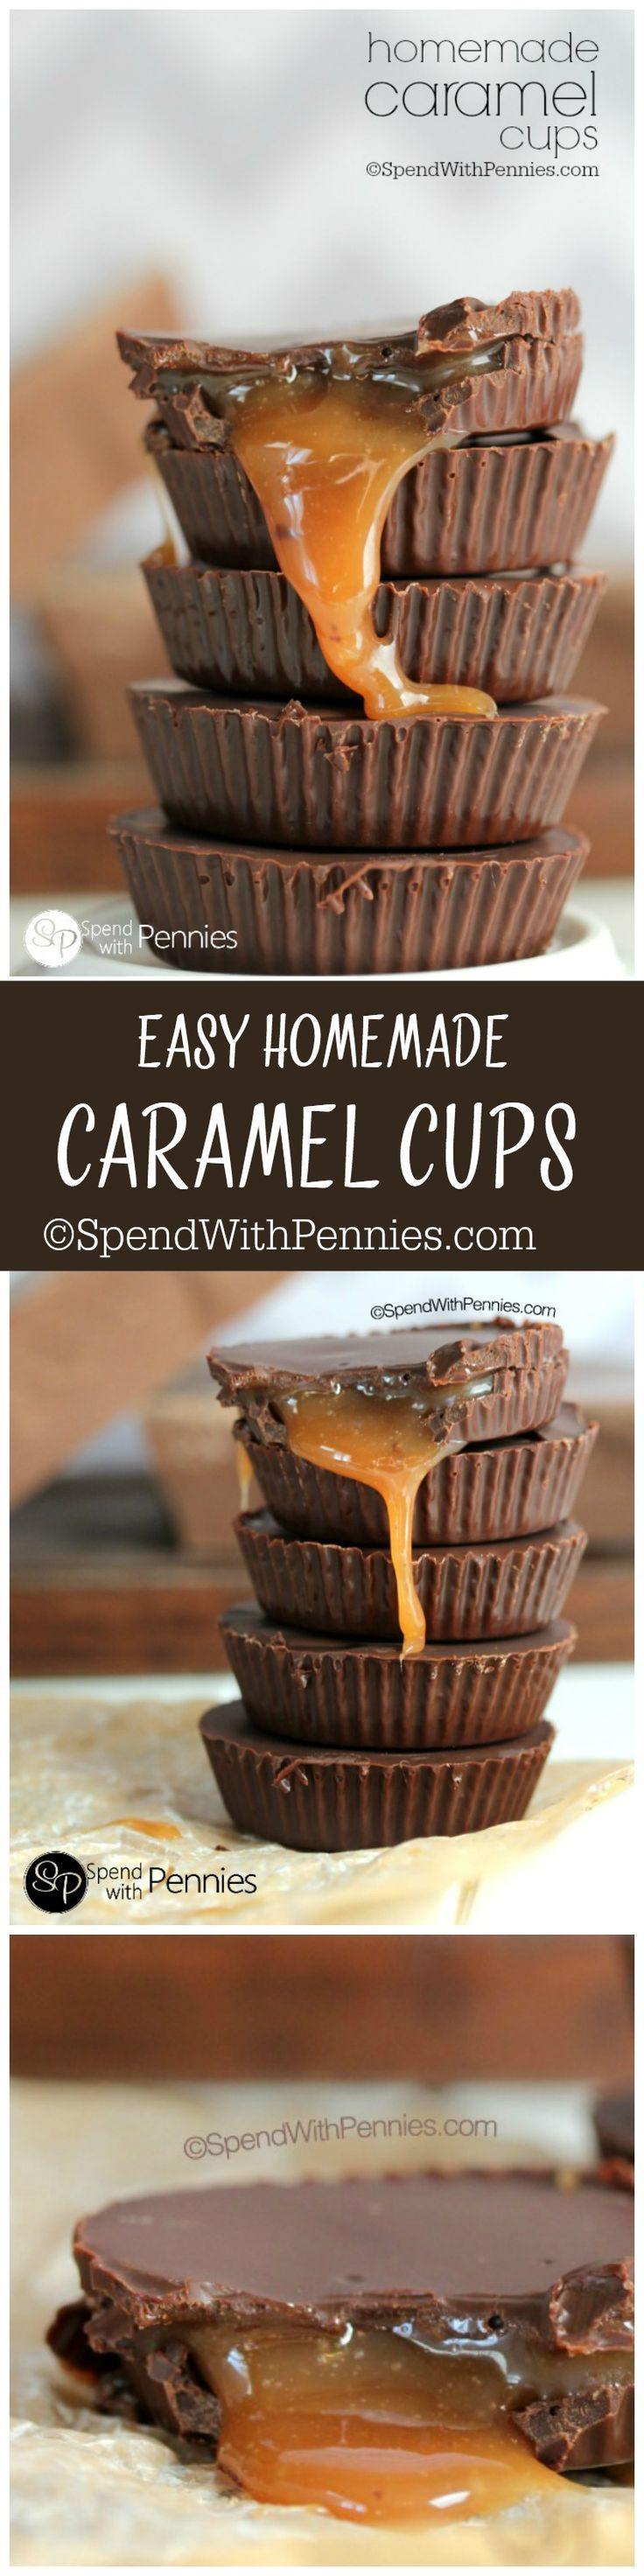 Homemade Caramel Cups are totally decadent and amazing. You'll be surprised at how easy they are to make! Perfect as a gift or an indulgent treat!.